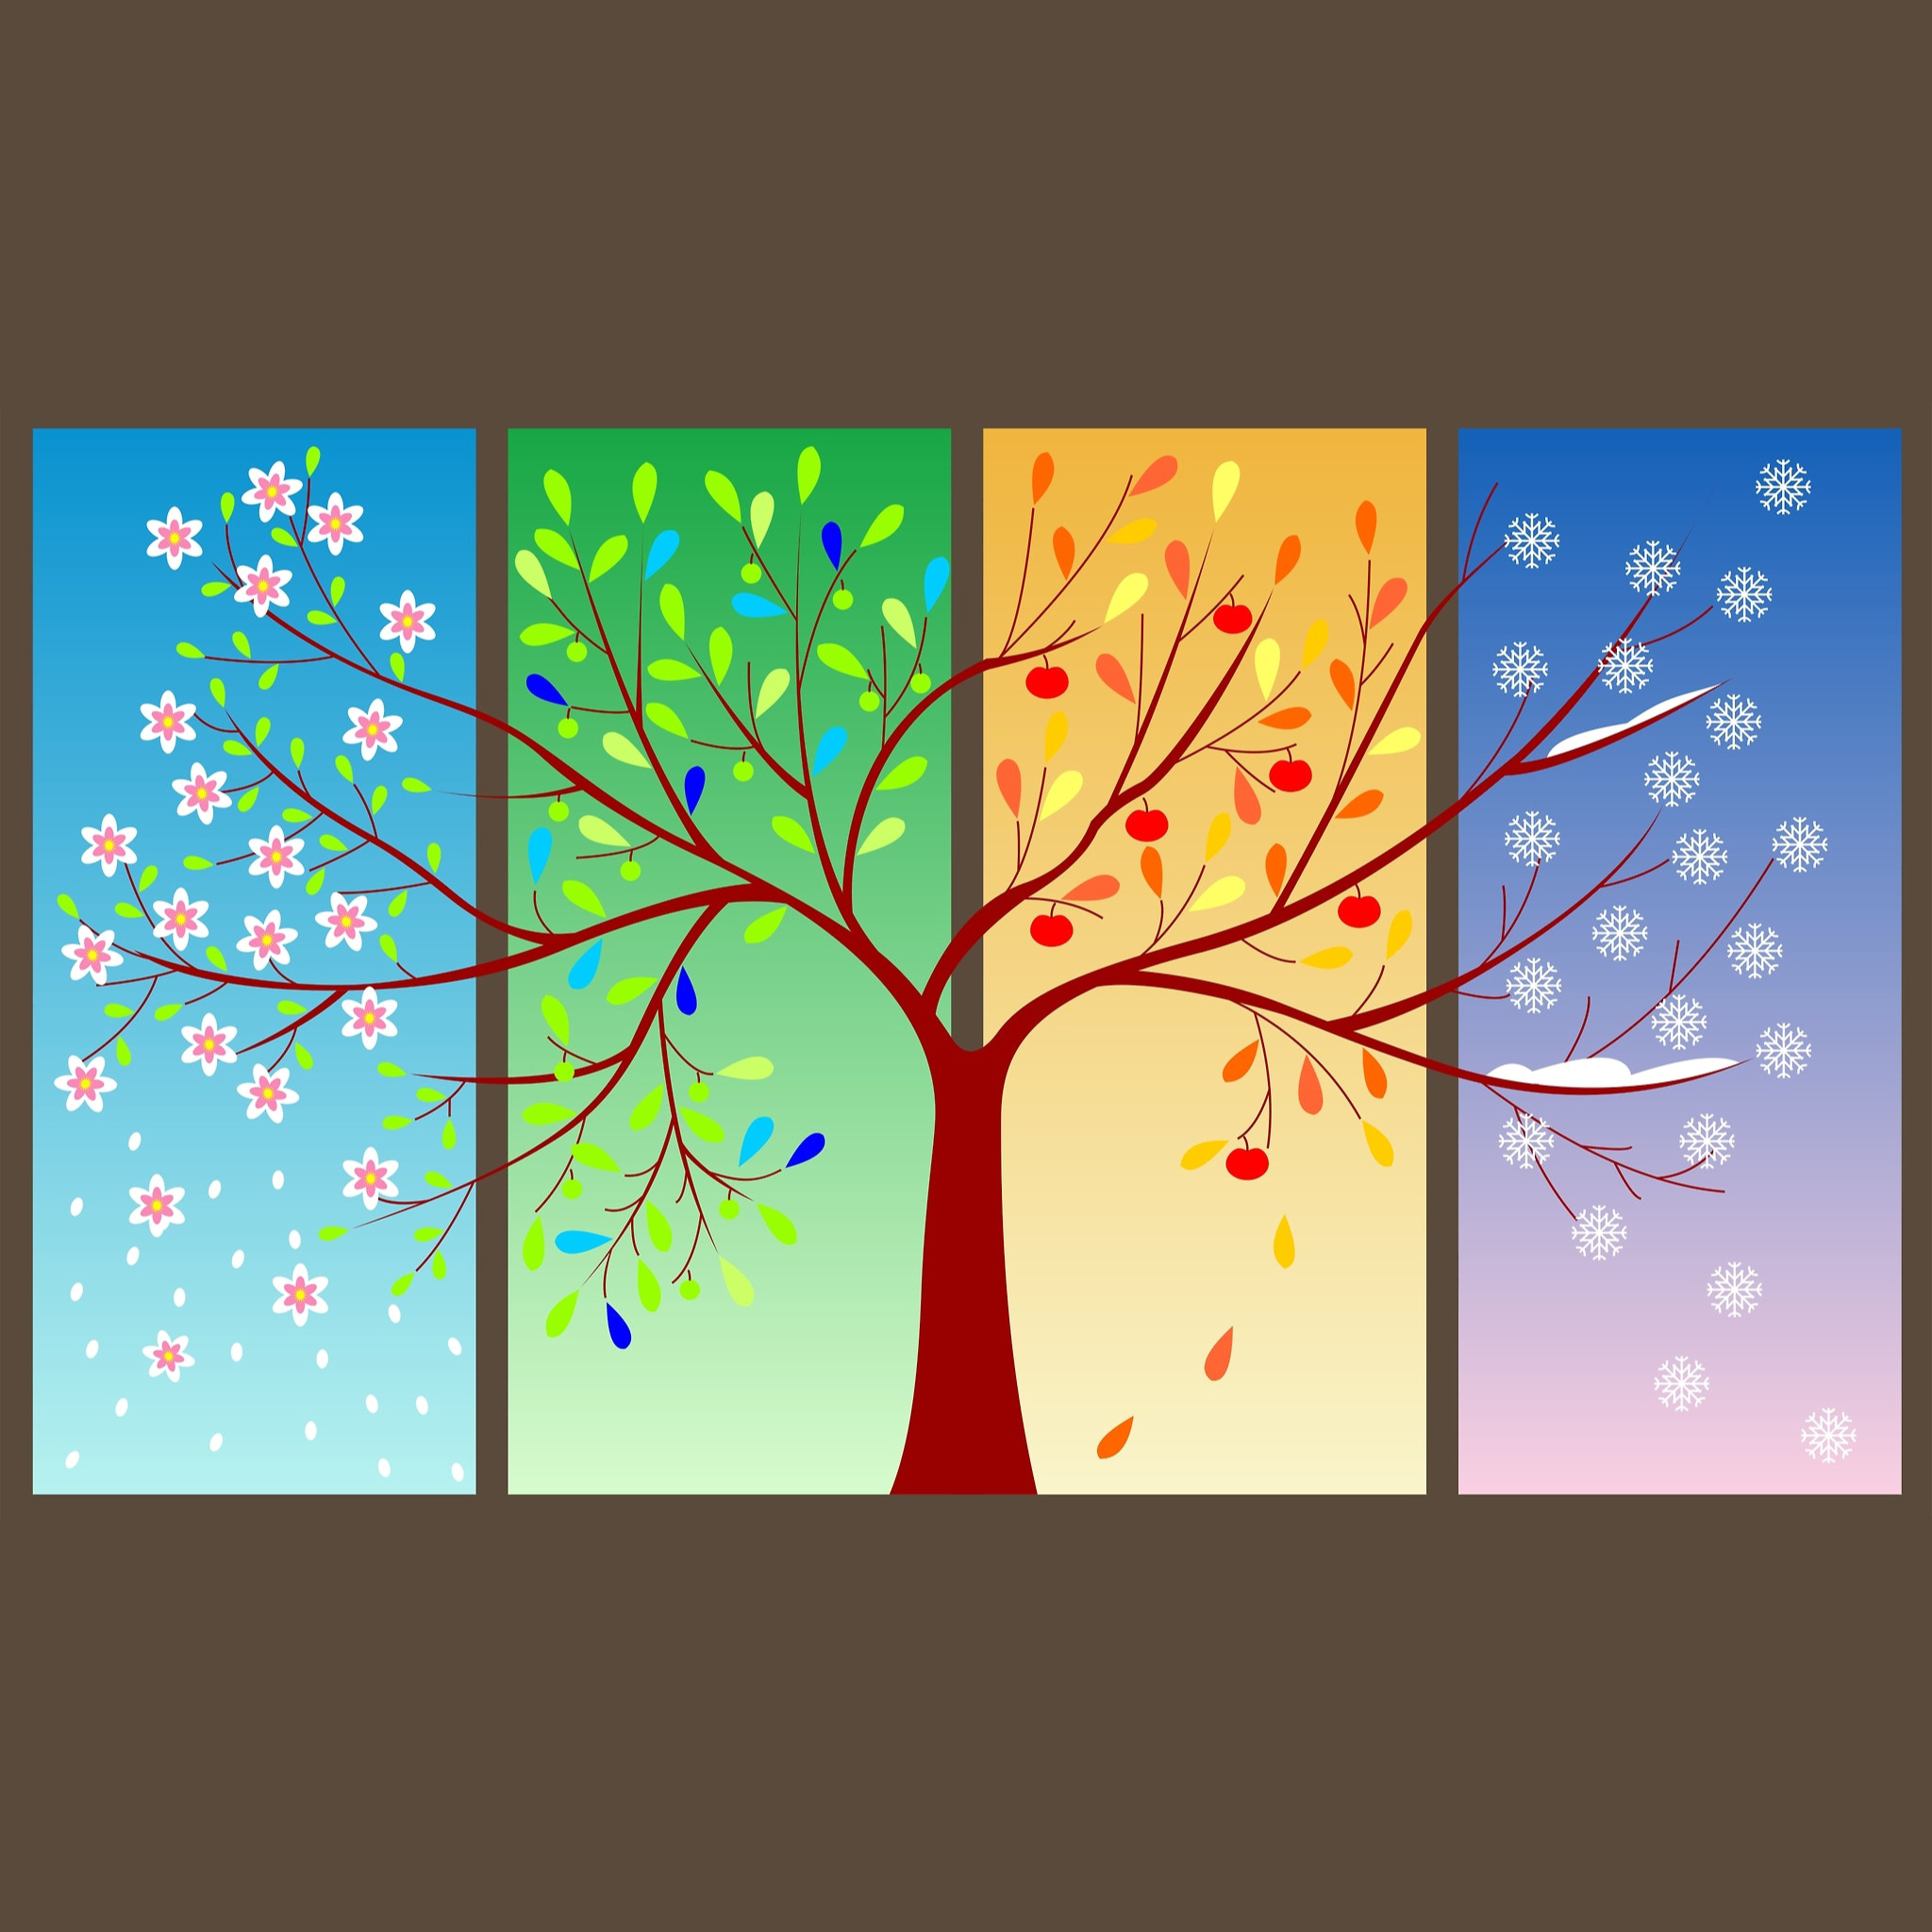 illustration of an apple tree during all four seasons